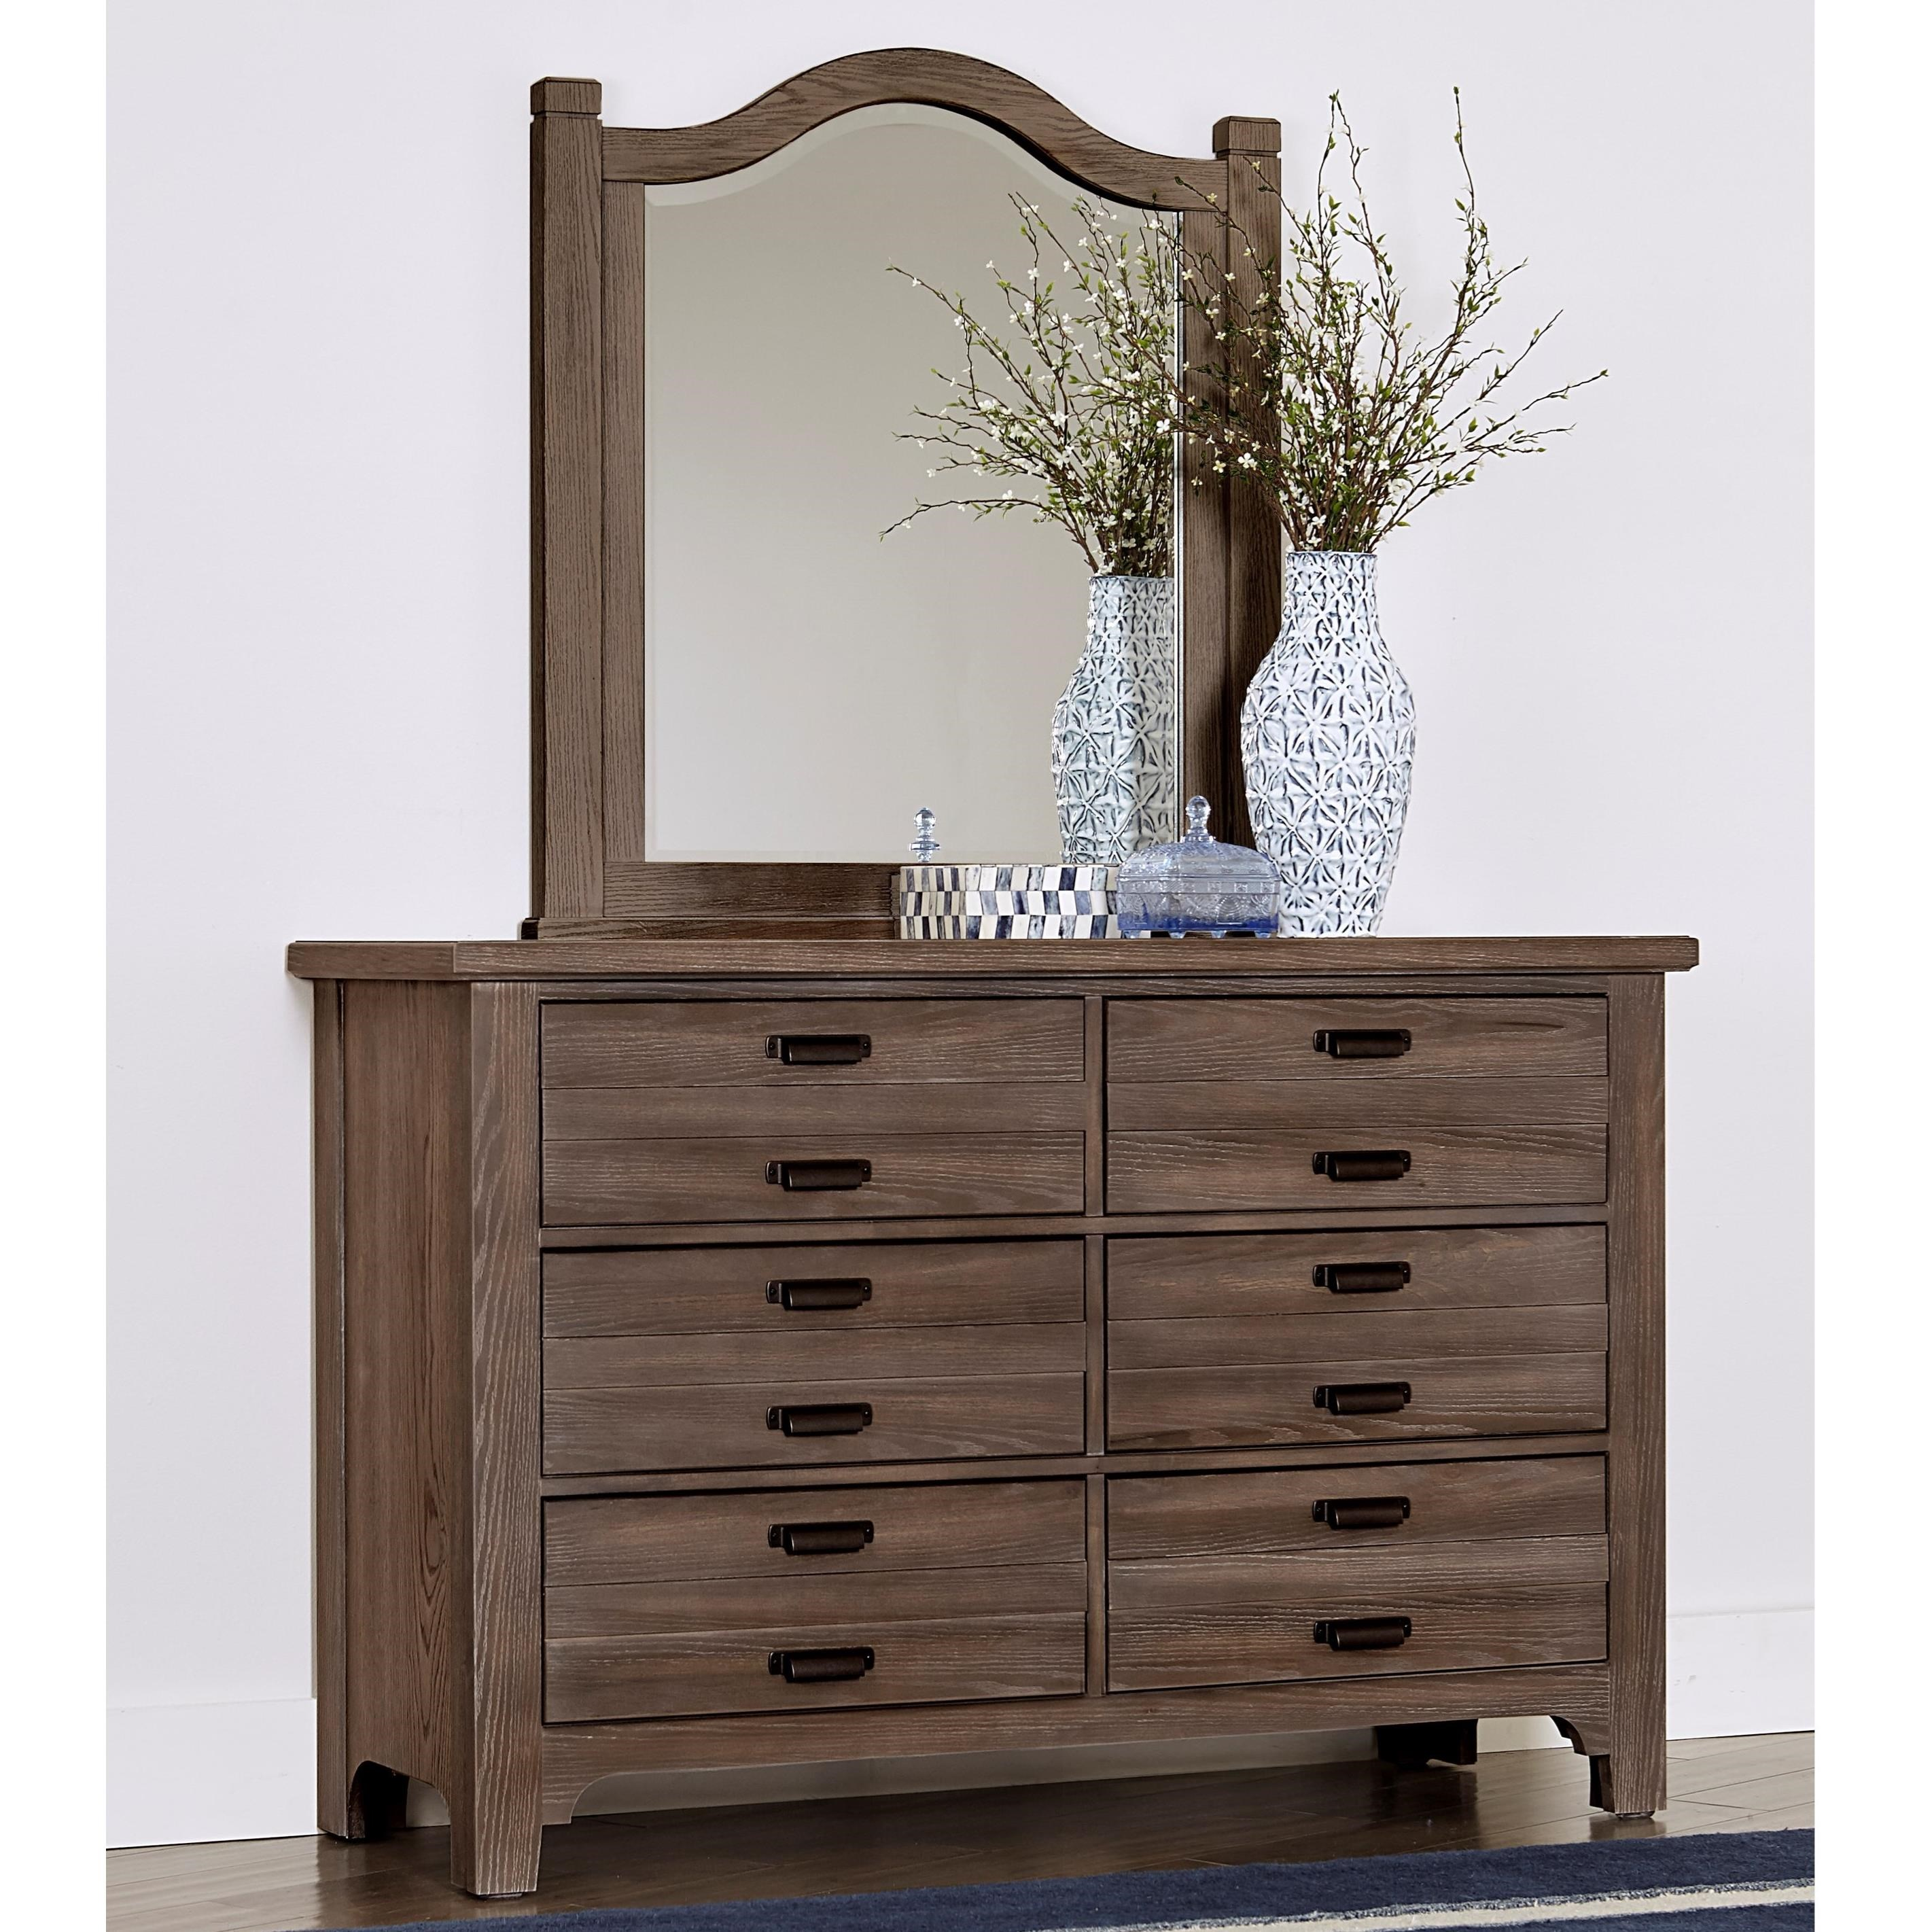 Bungalow Double Dresser & Small Arch Mirror by Vaughan-Bassett at Crowley Furniture & Mattress